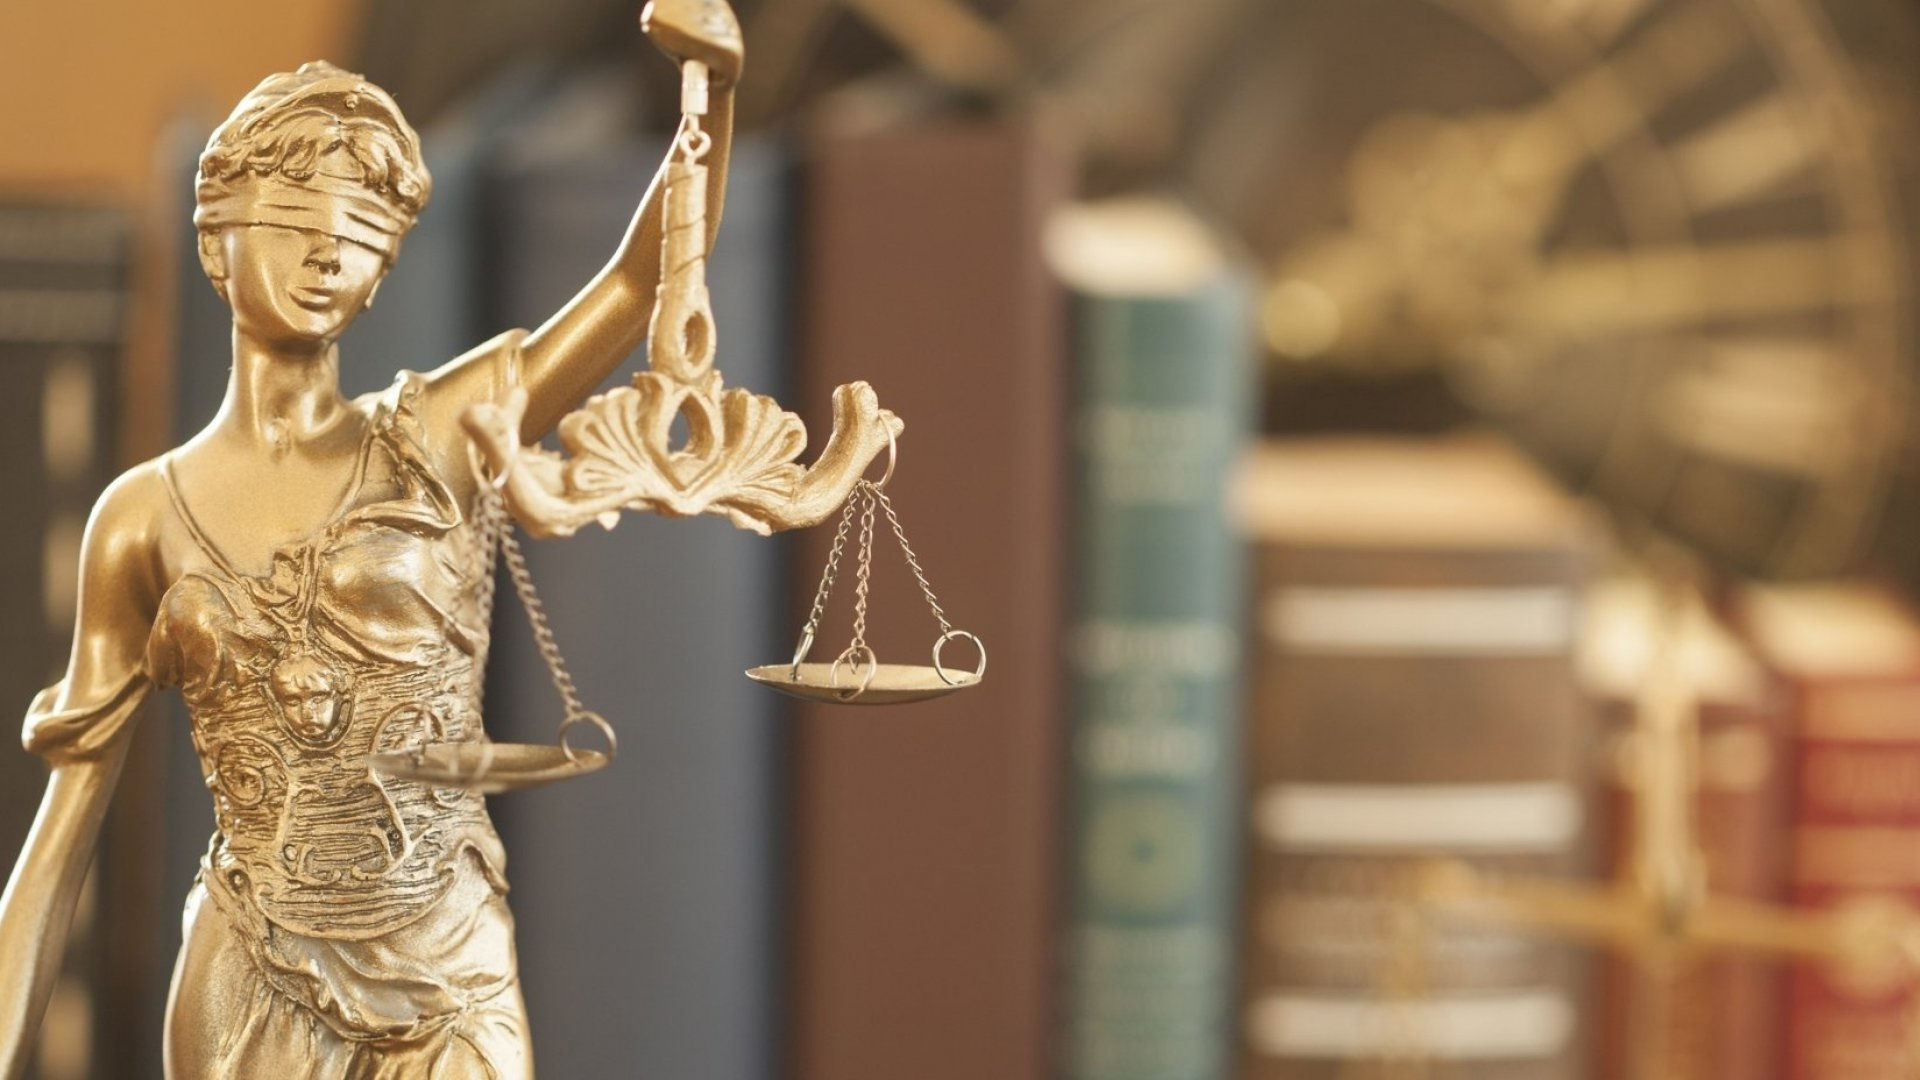 3 Attributes to Look for in Your Lawyer